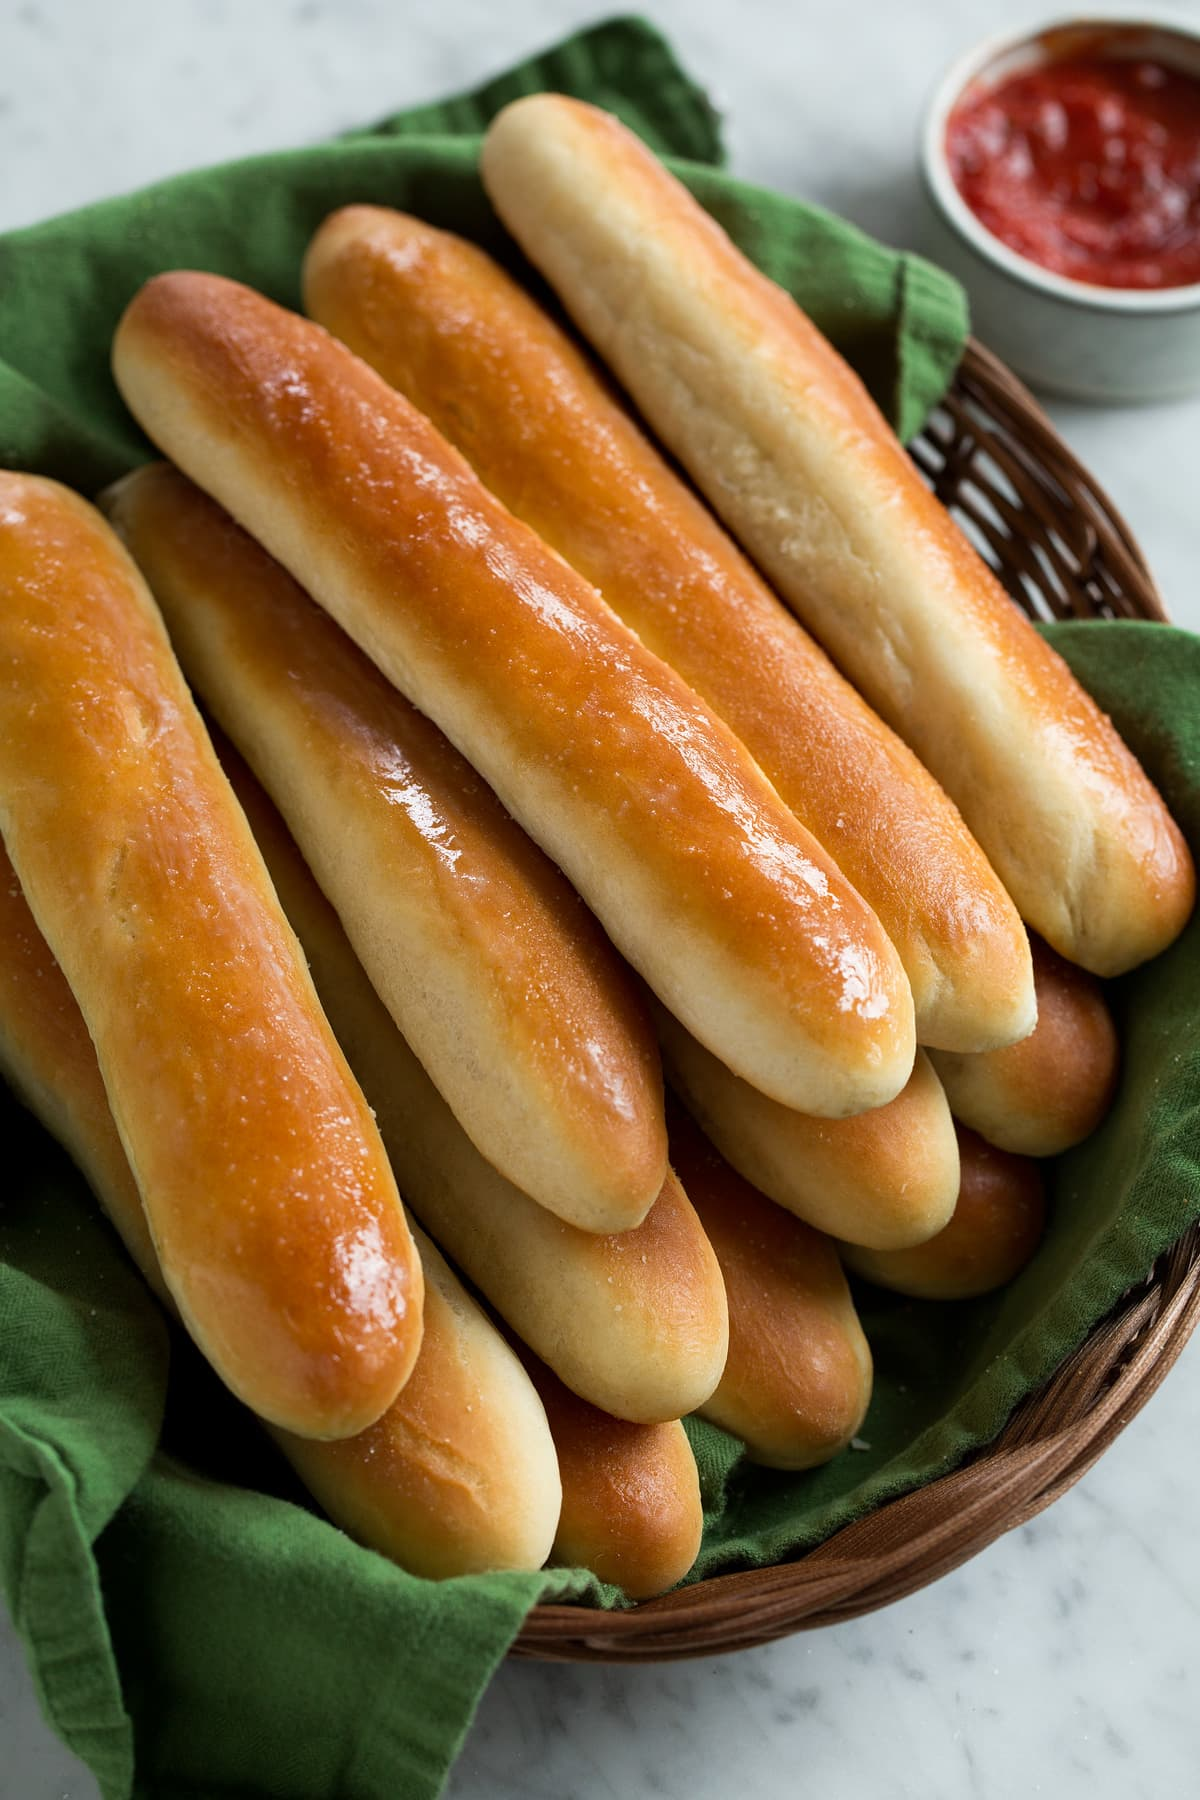 Breadsticks stacked in a wicker basket lined with a green kitchen cloth.